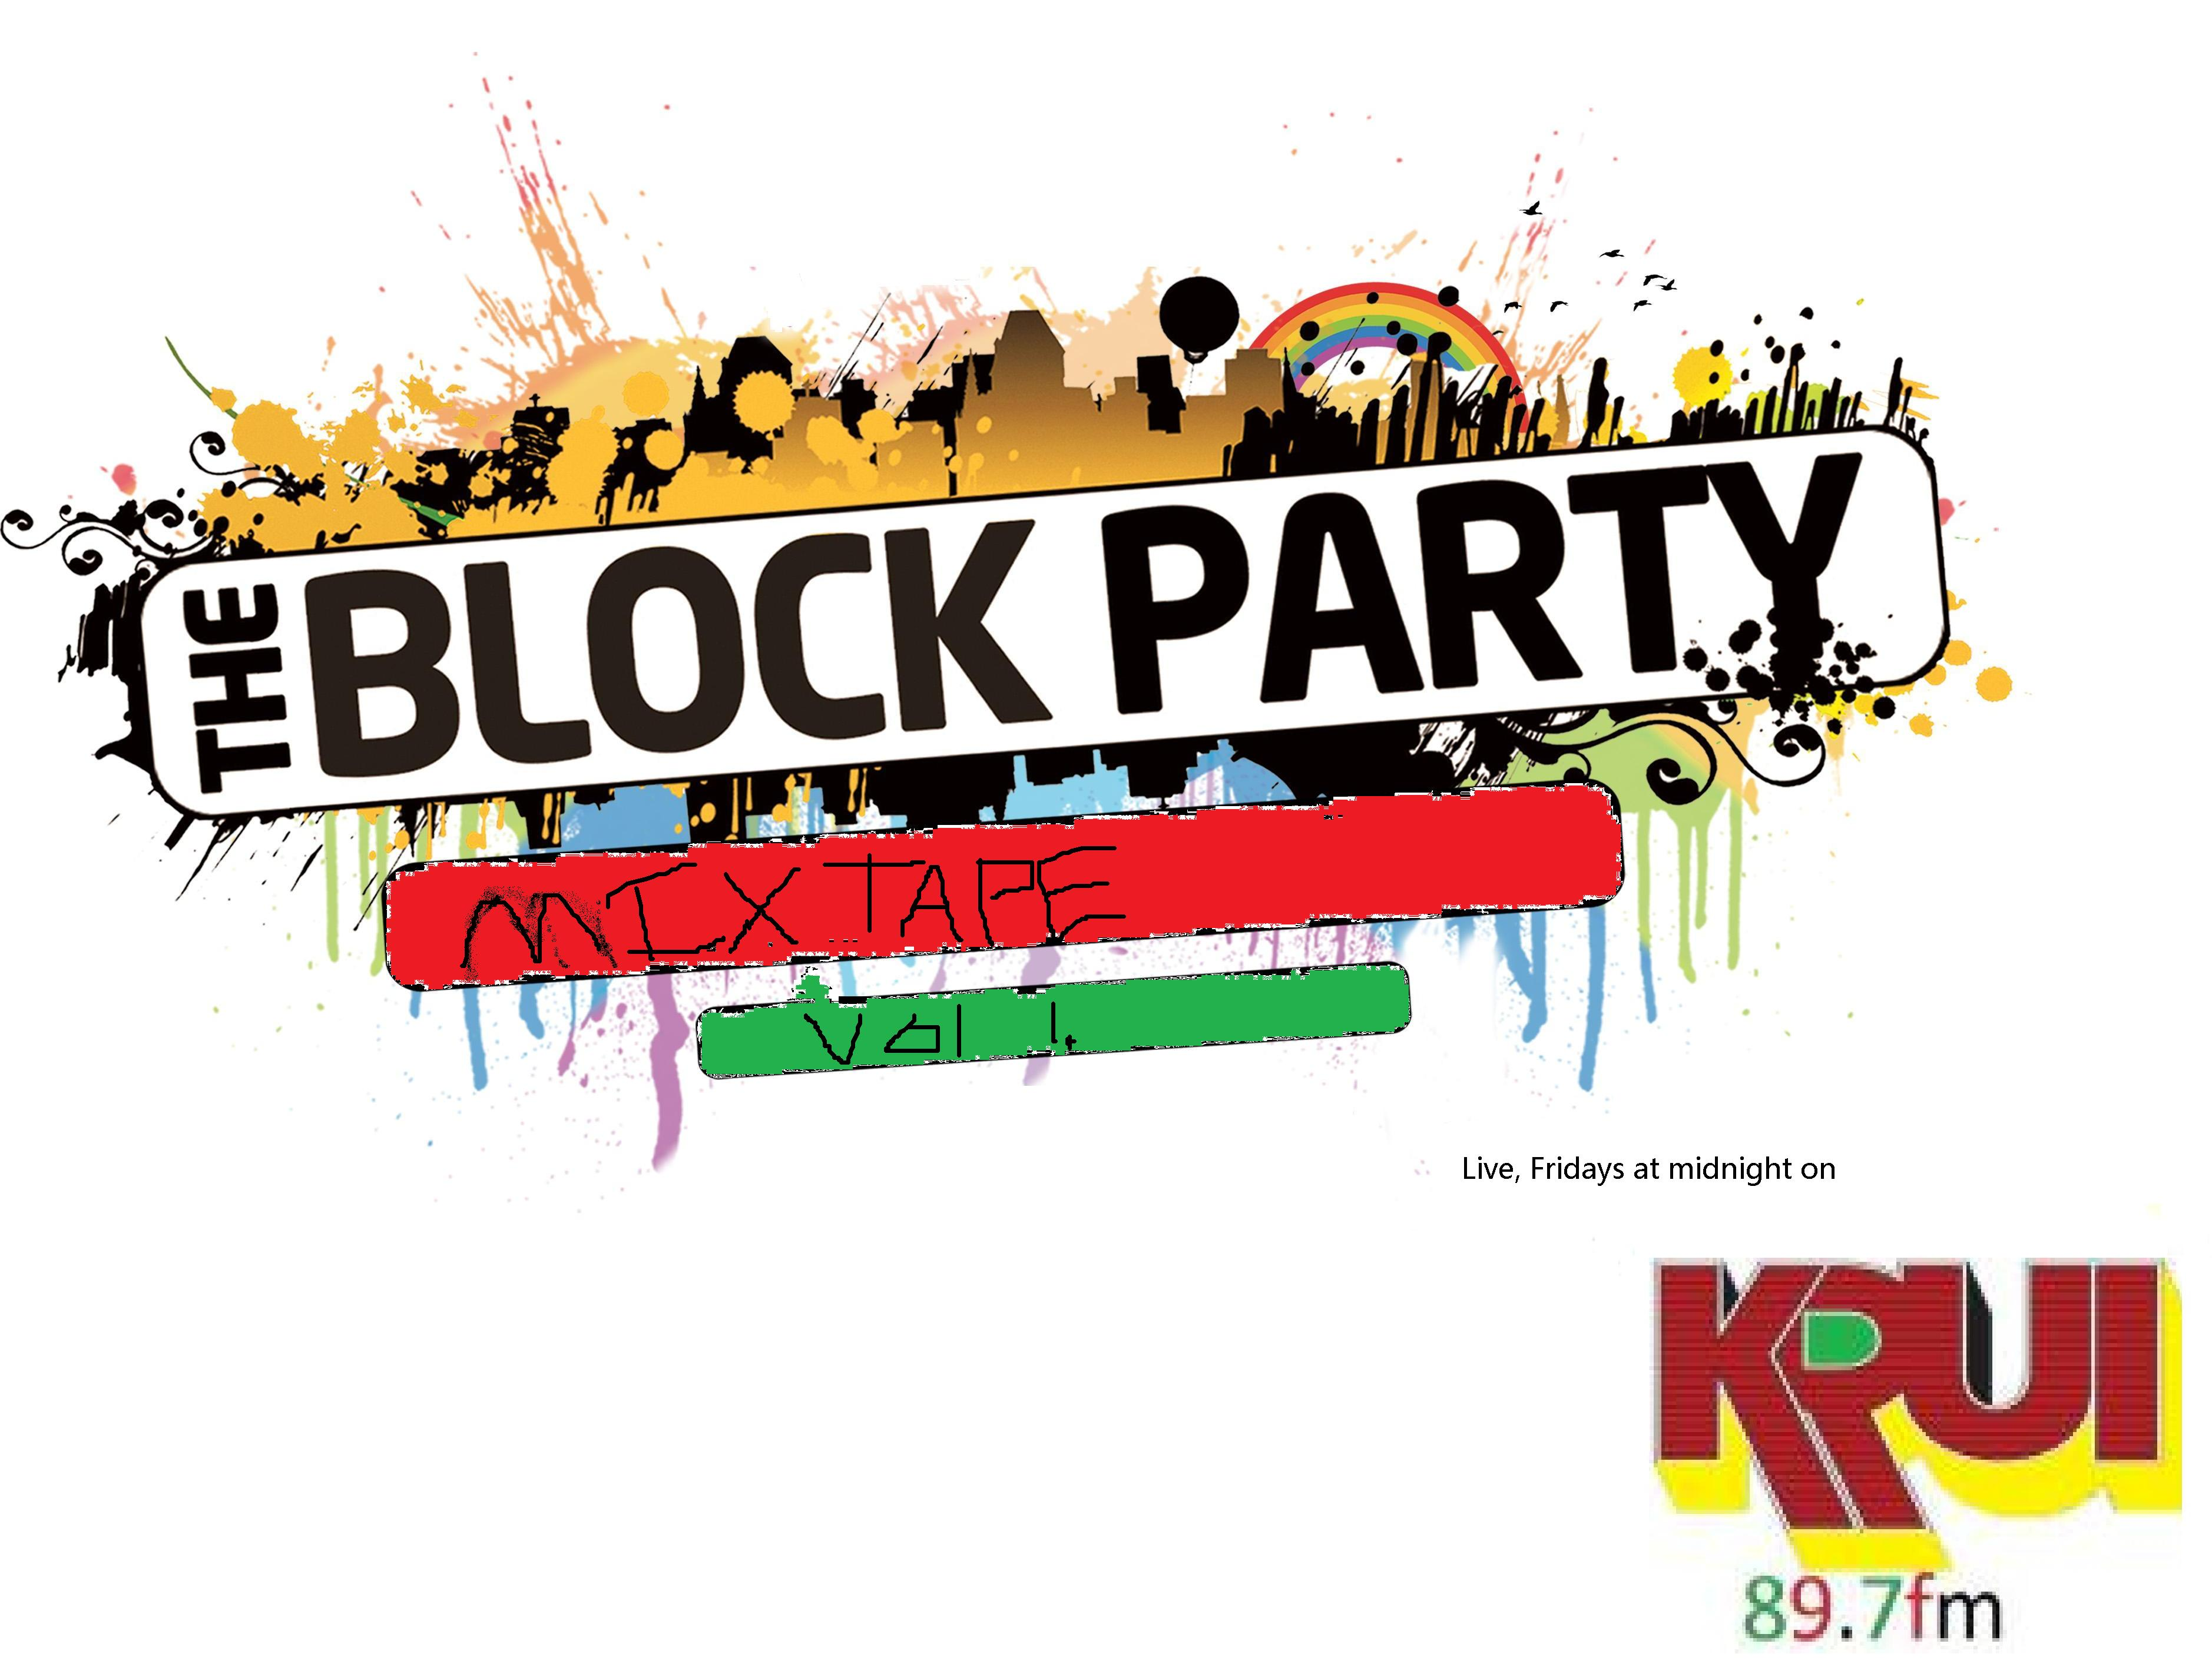 The Block Party | Real hip hop radio, Friday nights at midnight ...